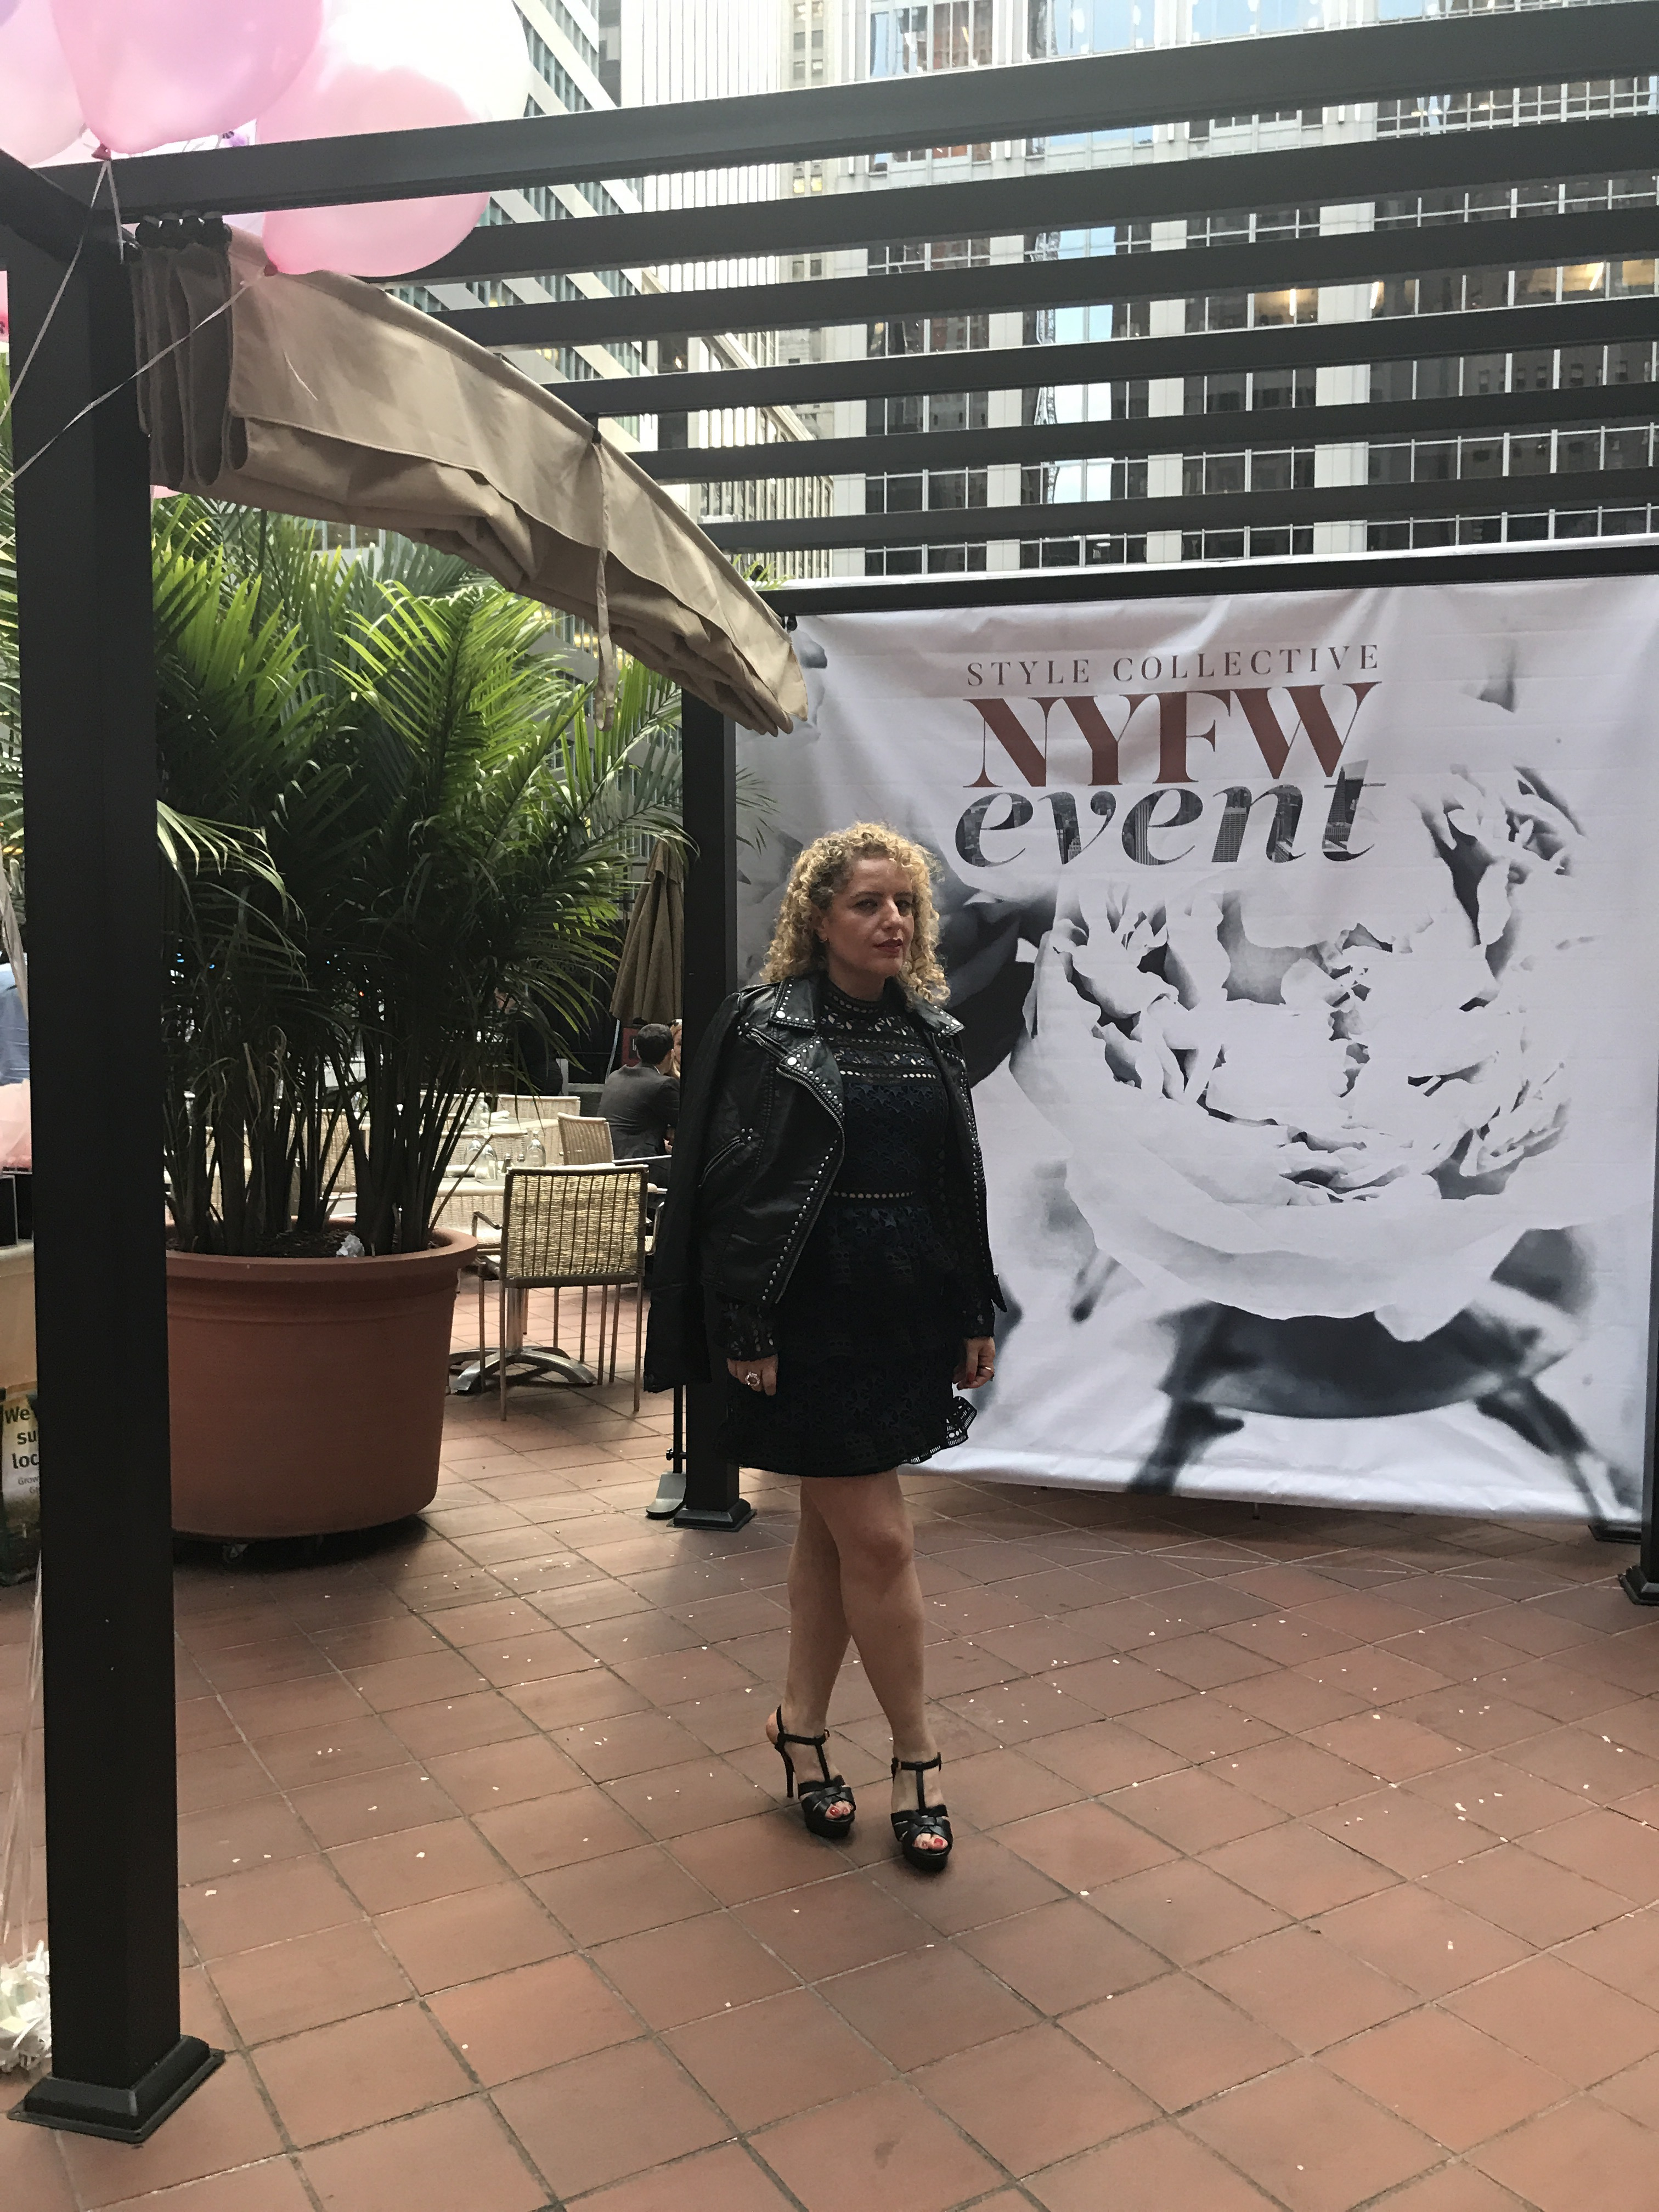 How to Get NYFW Invites as A New Blogger by Liz in Los Angeles, Los Angeles Lifestyle Blogger